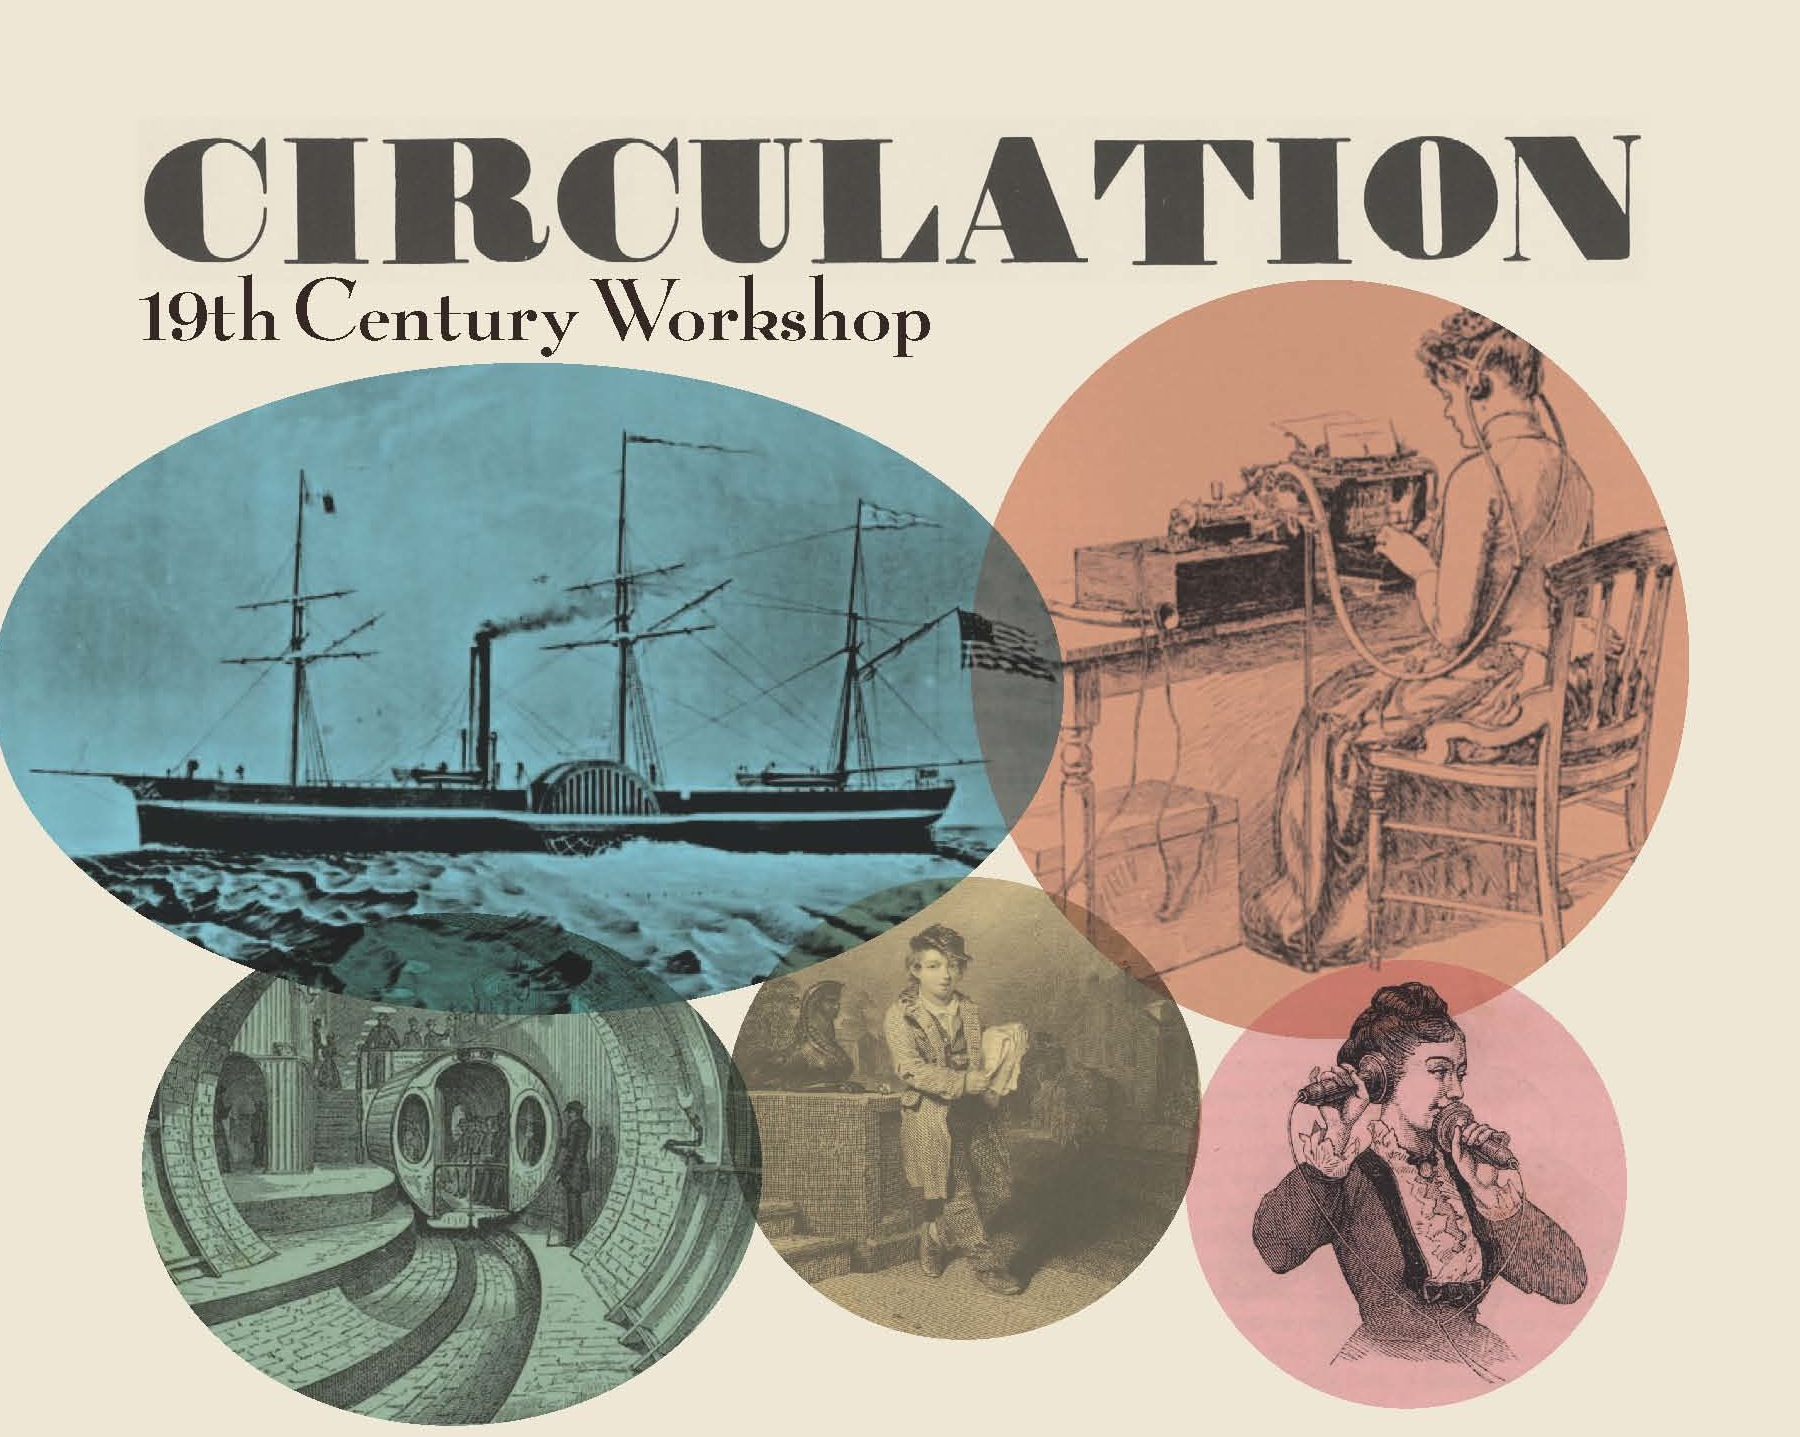 19th Century Workshop: Circulation